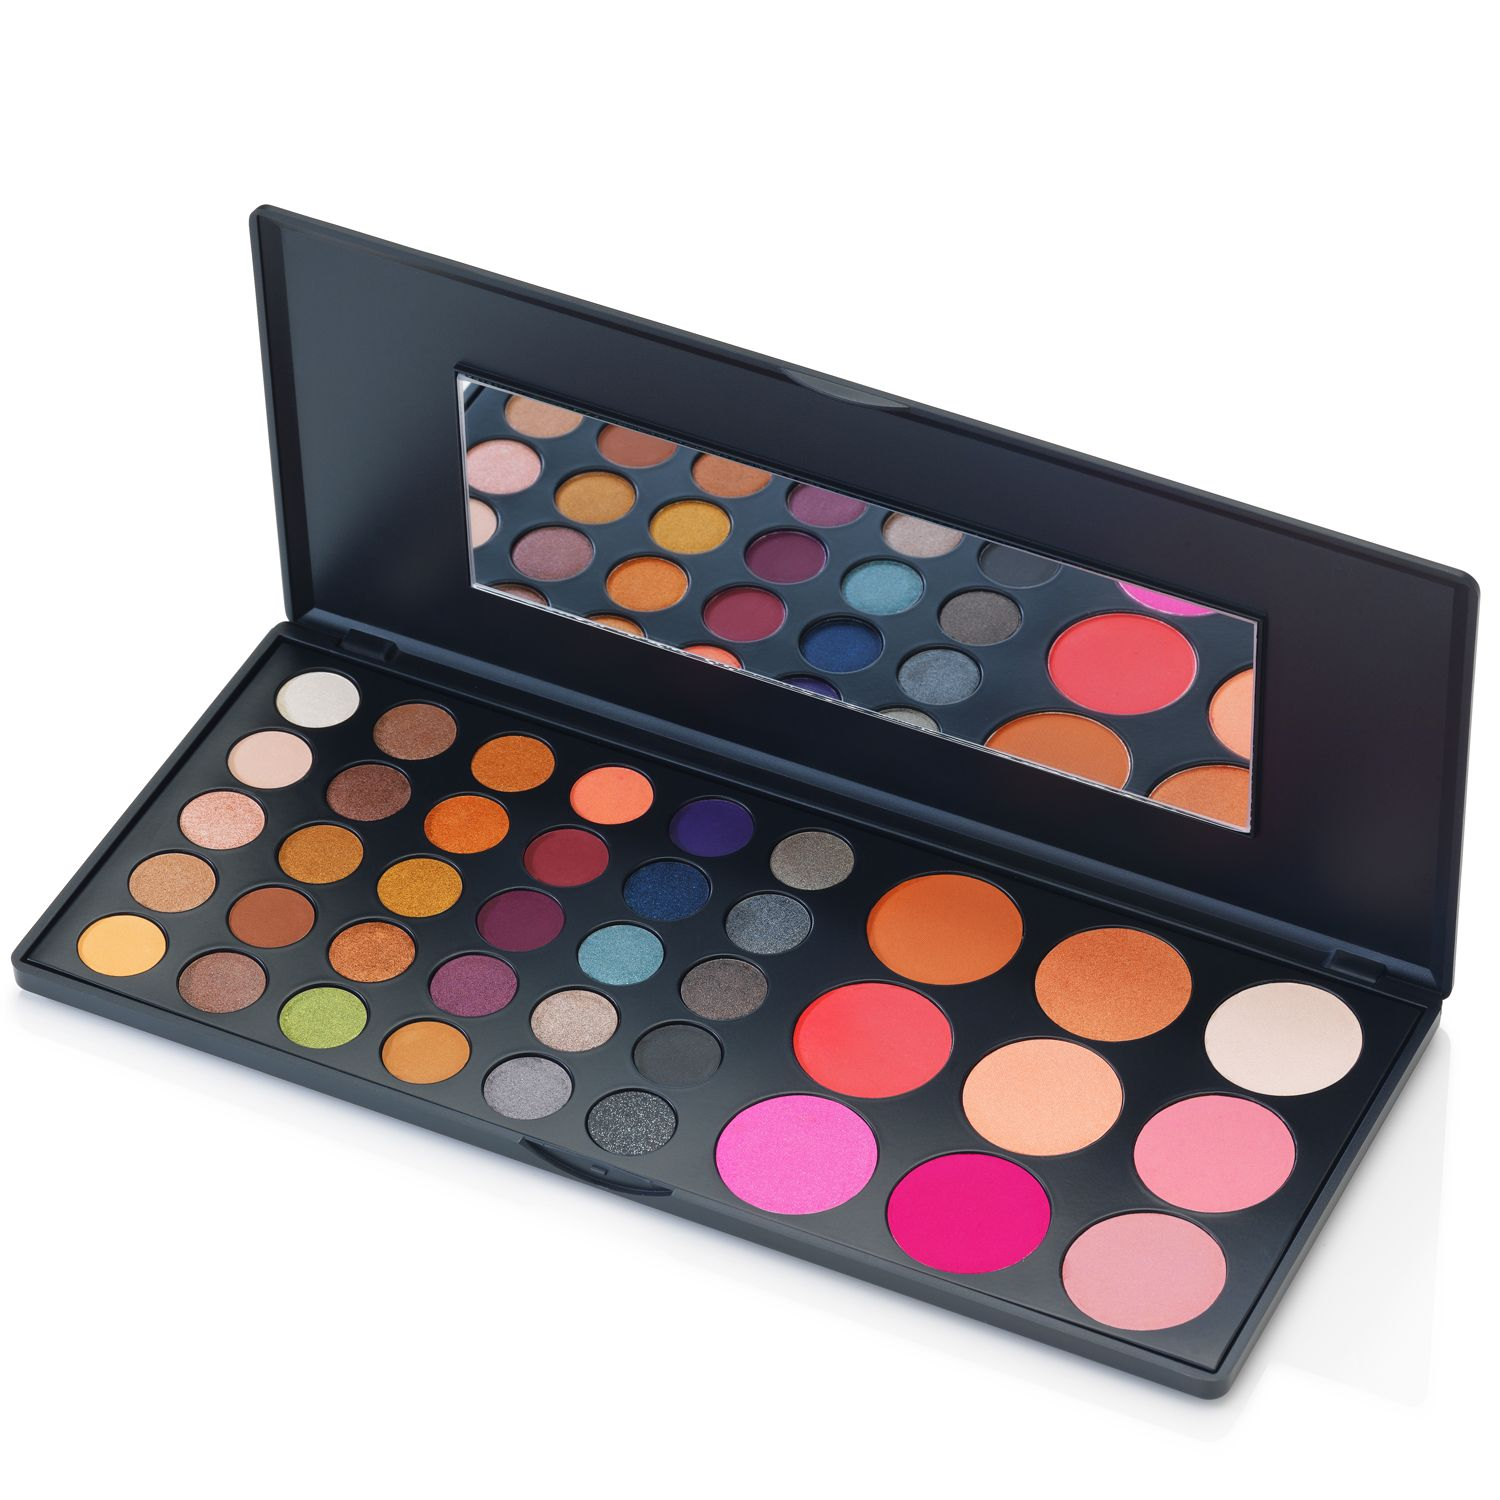 BH Special Occasion Eyeshadow & Blush Palette. The BH